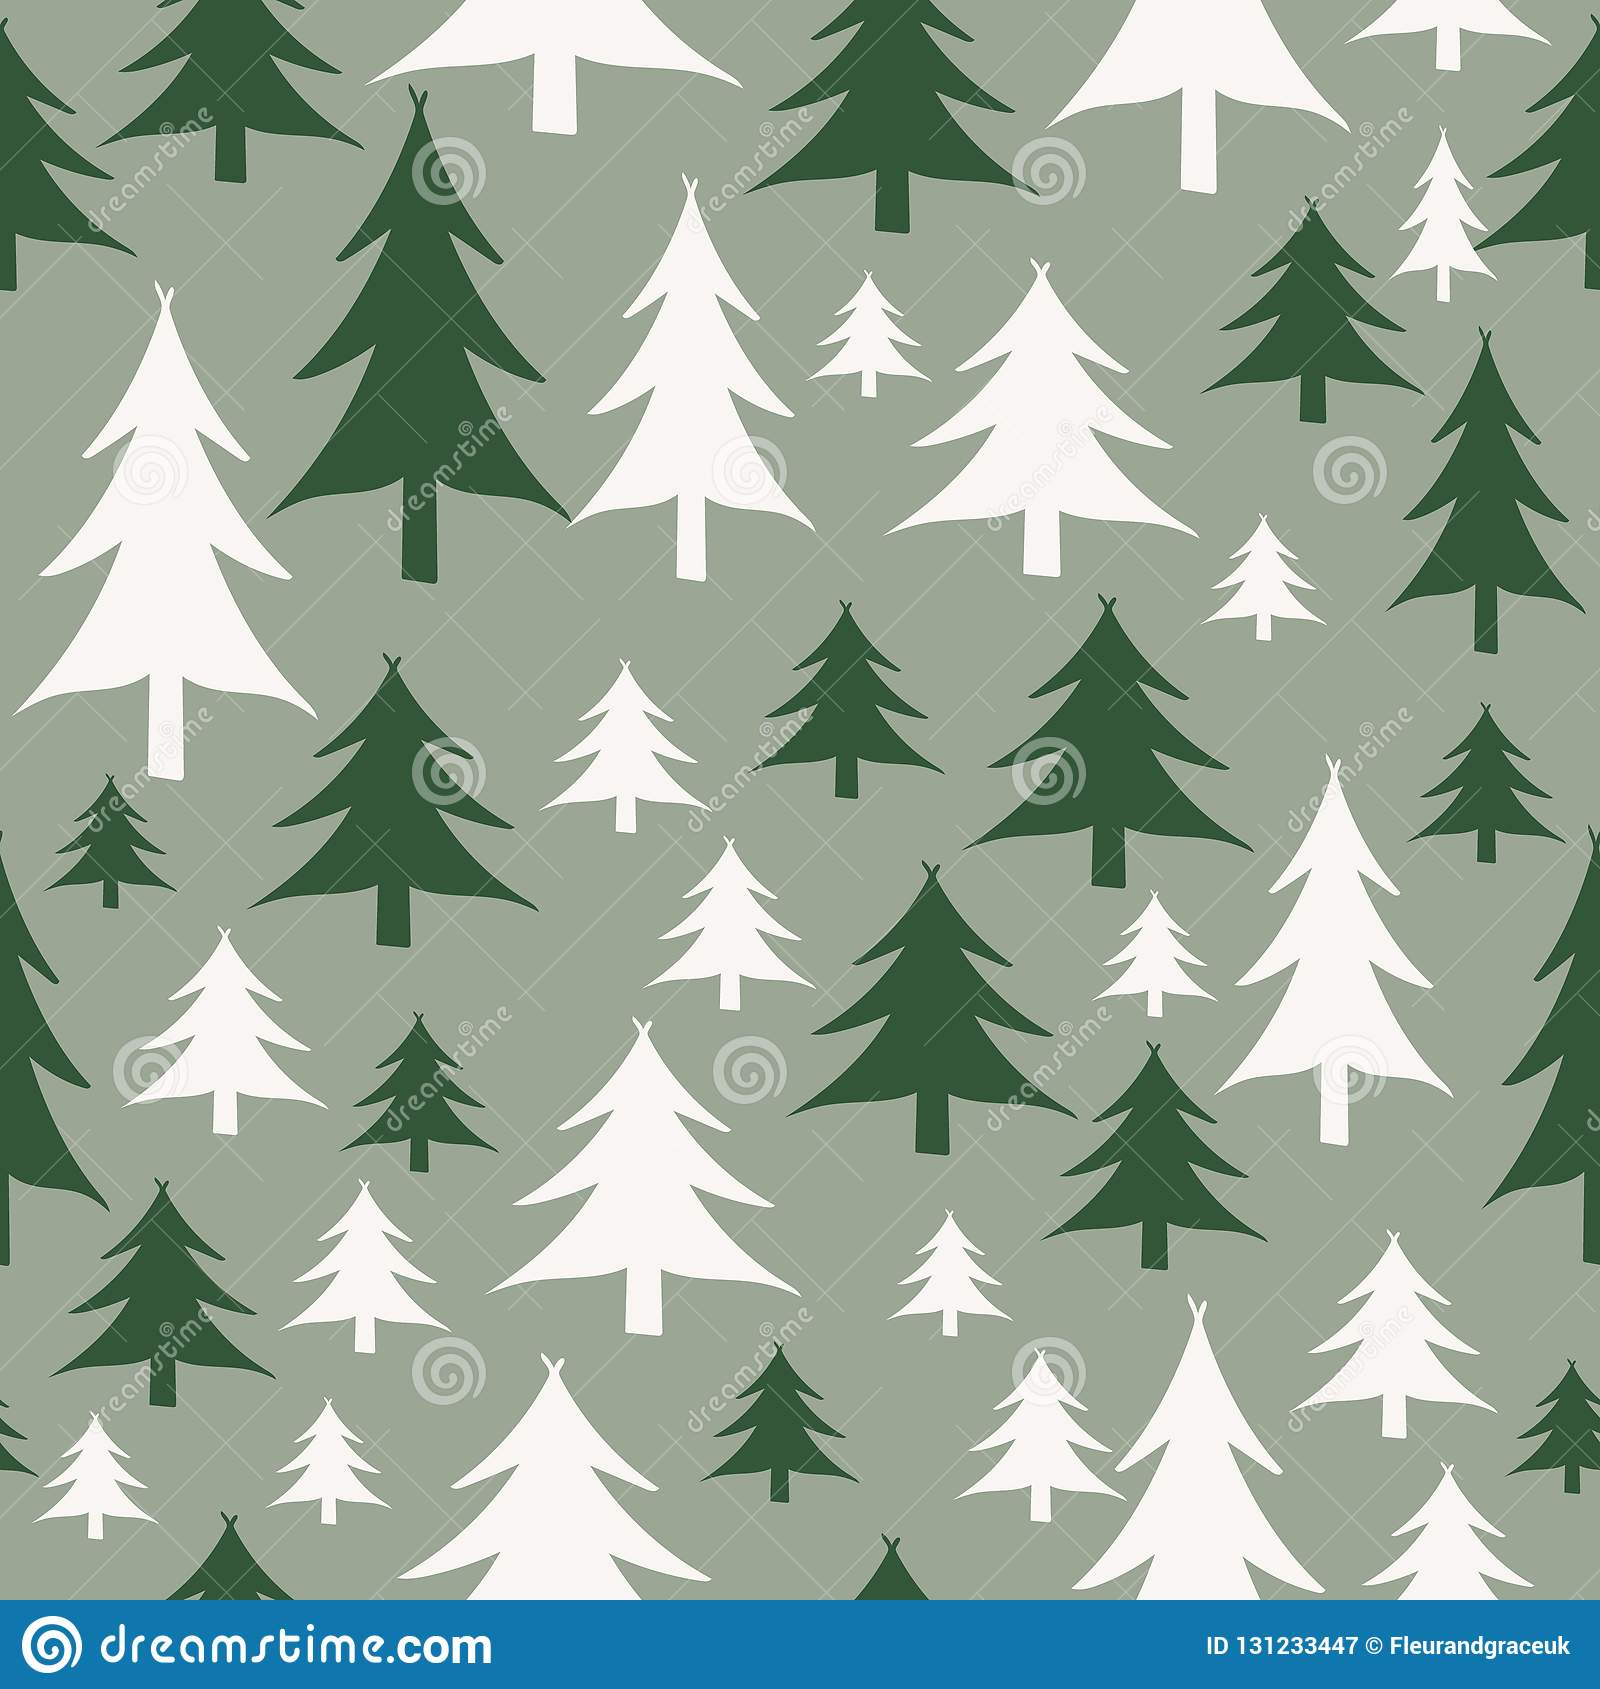 Green And White Christmas Tree: Green And White Christmas Trees Seamless Pattern Stock